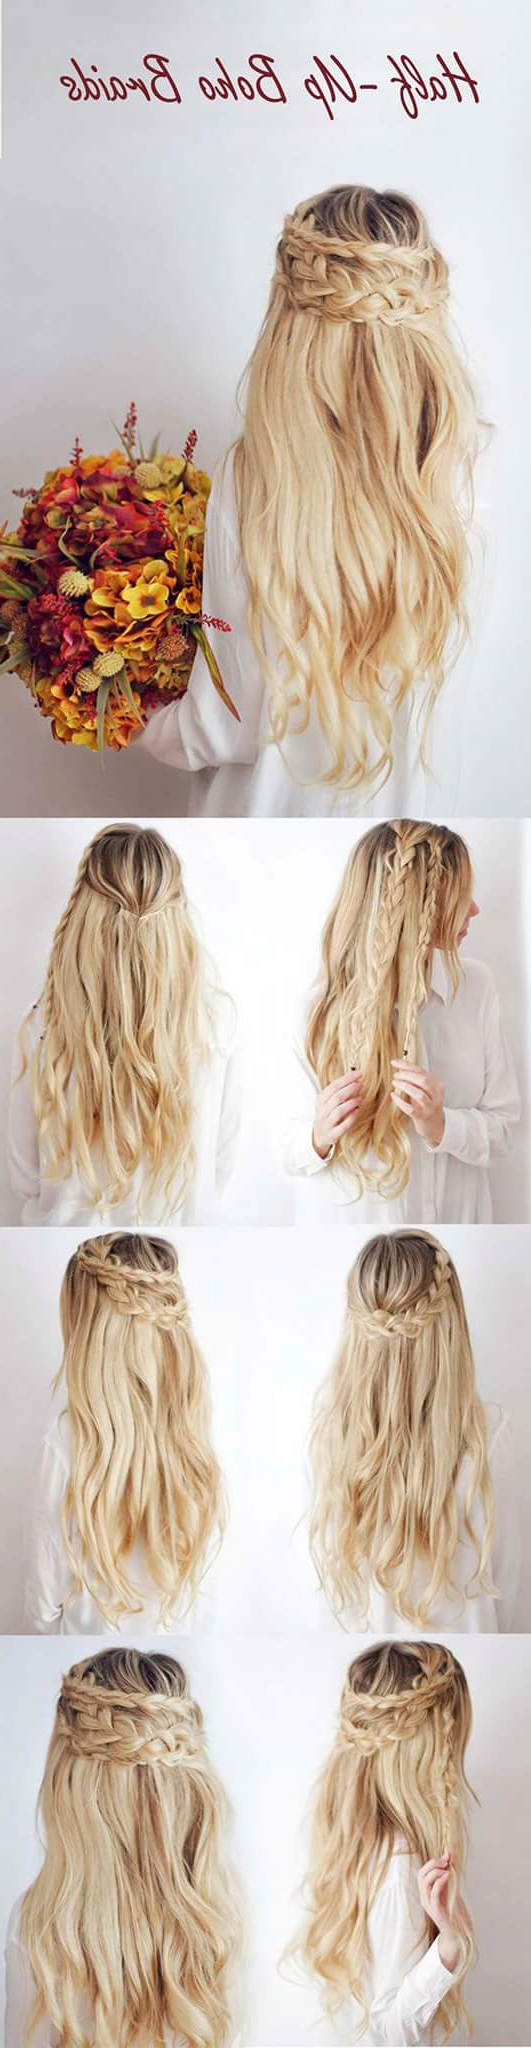 55+ Trendy Head Turning Boho (Bohemian) Hairstyles For All Intended For Fashionable Half Up Half Down Boho Braided Hairstyles (Gallery 15 of 20)